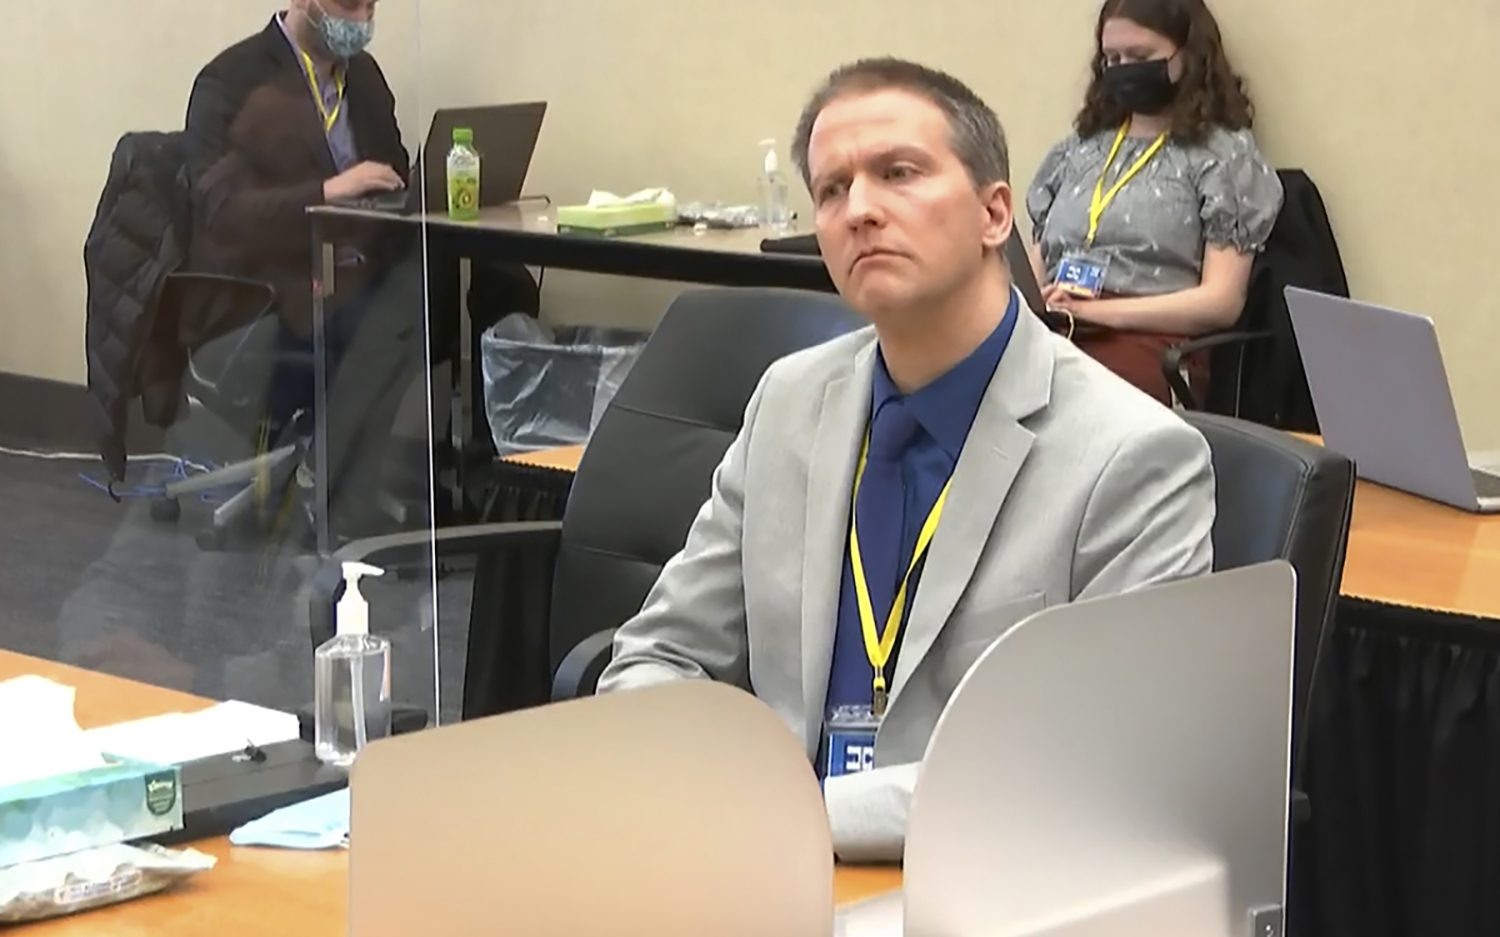 Jury begins deliberations in Chauvin trial